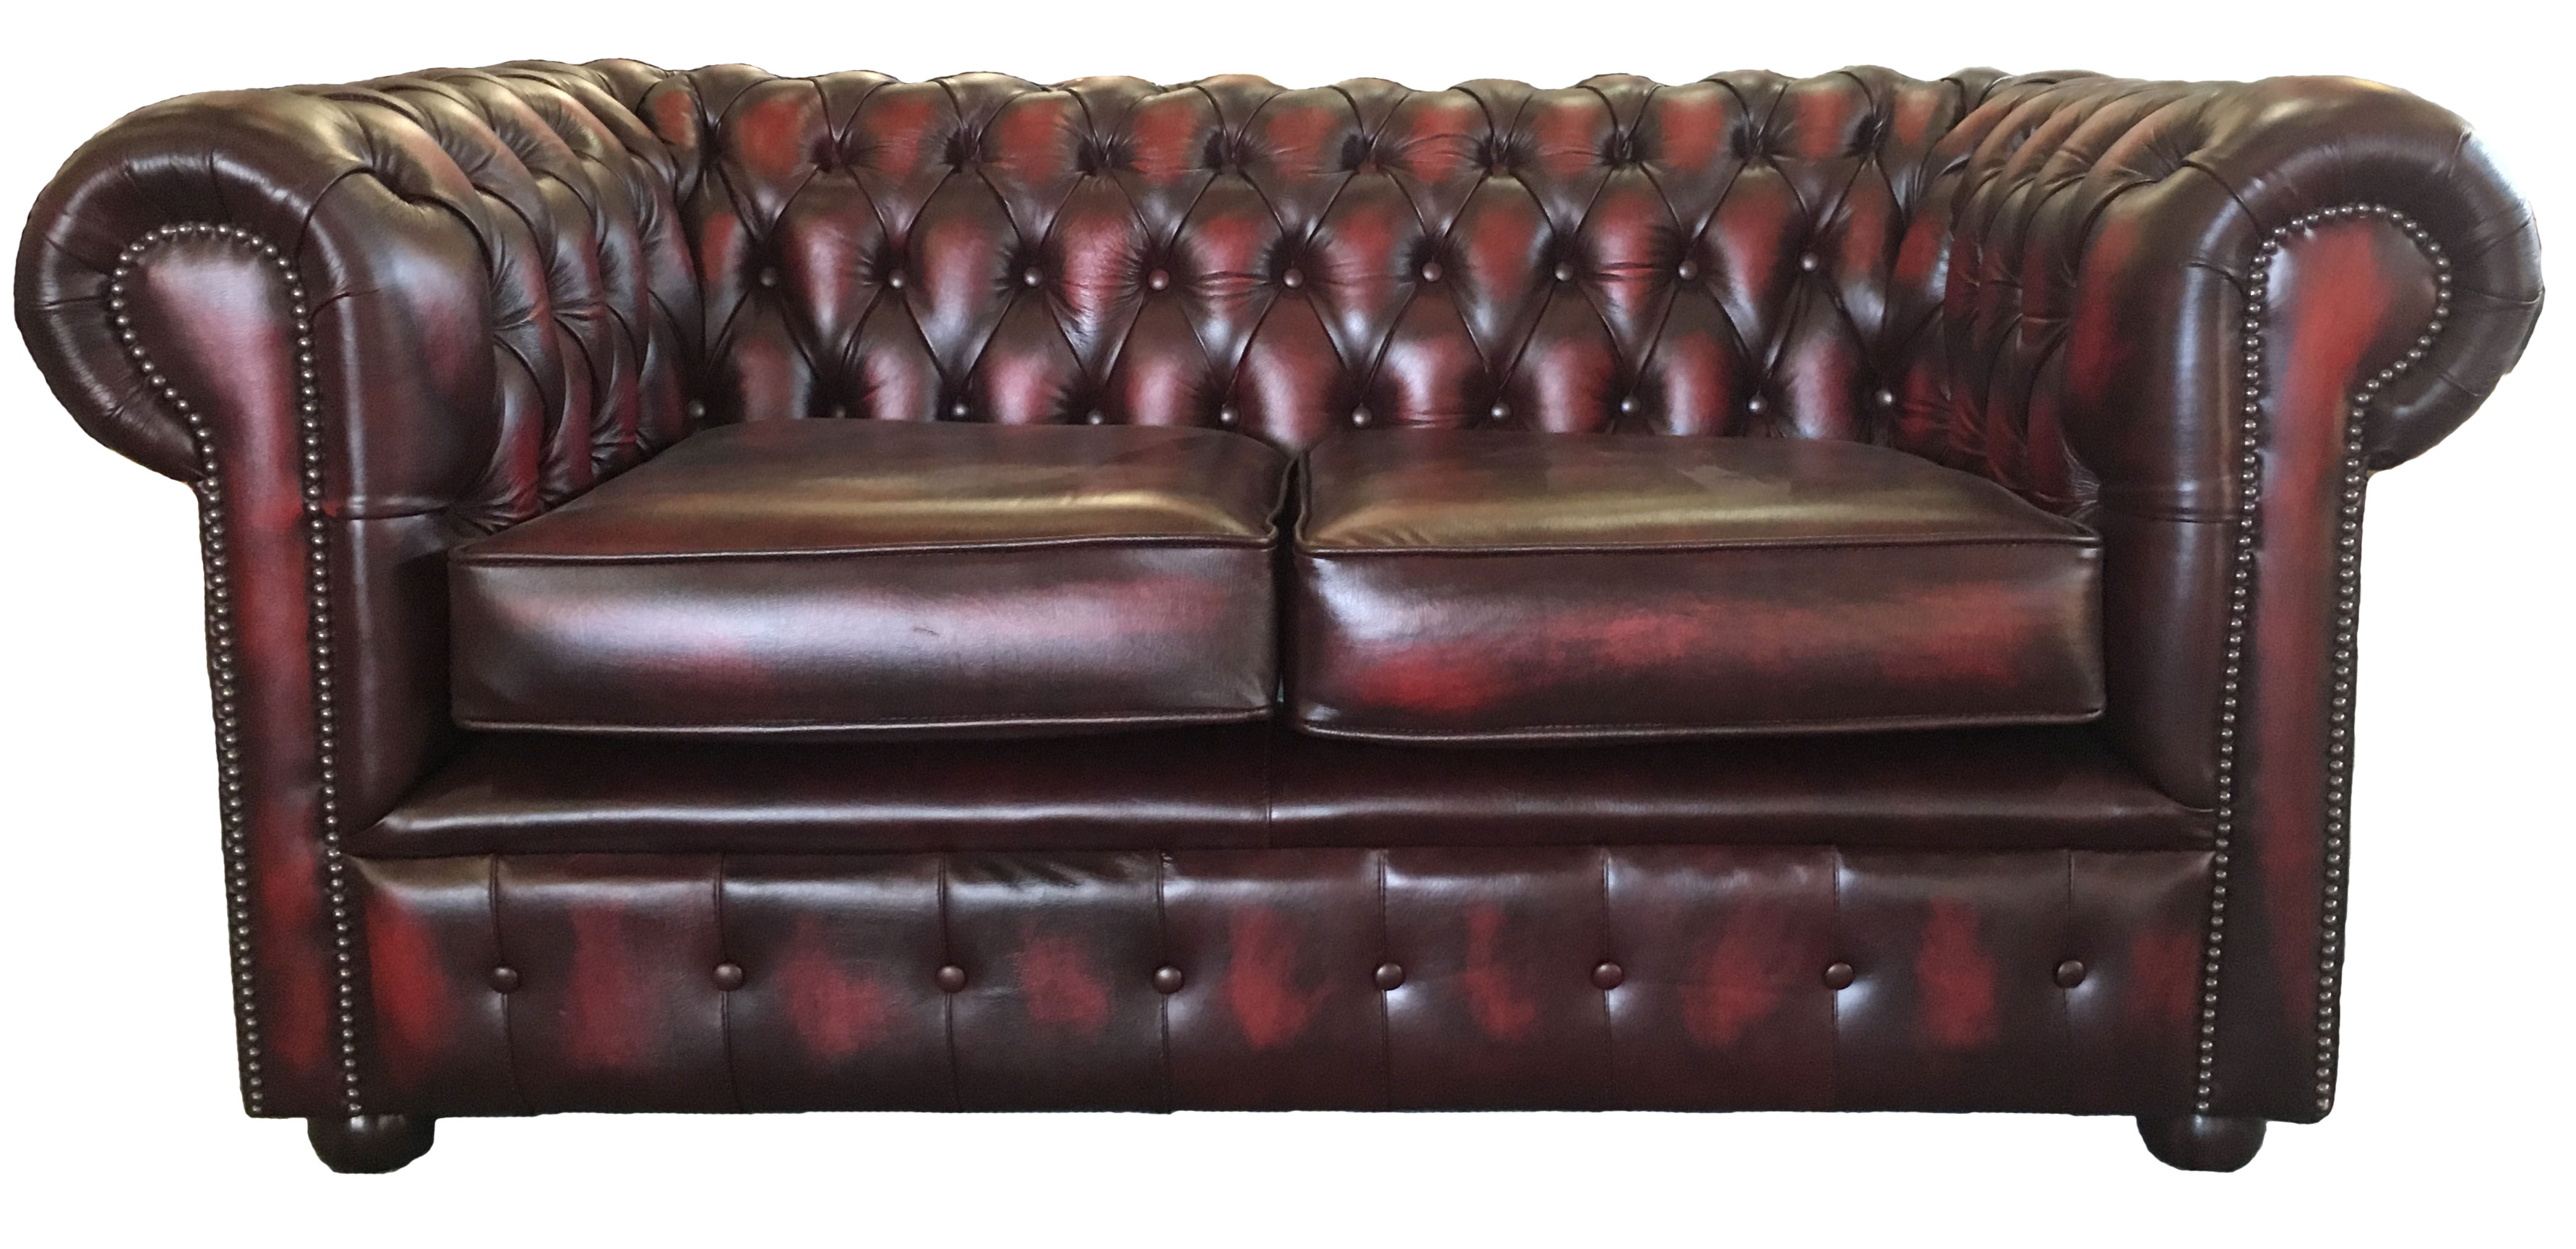 Brilliant Details About Antique Oxblood Red Vintage Style Chesterfield Genuine Leather Two Seater Sofa Pabps2019 Chair Design Images Pabps2019Com